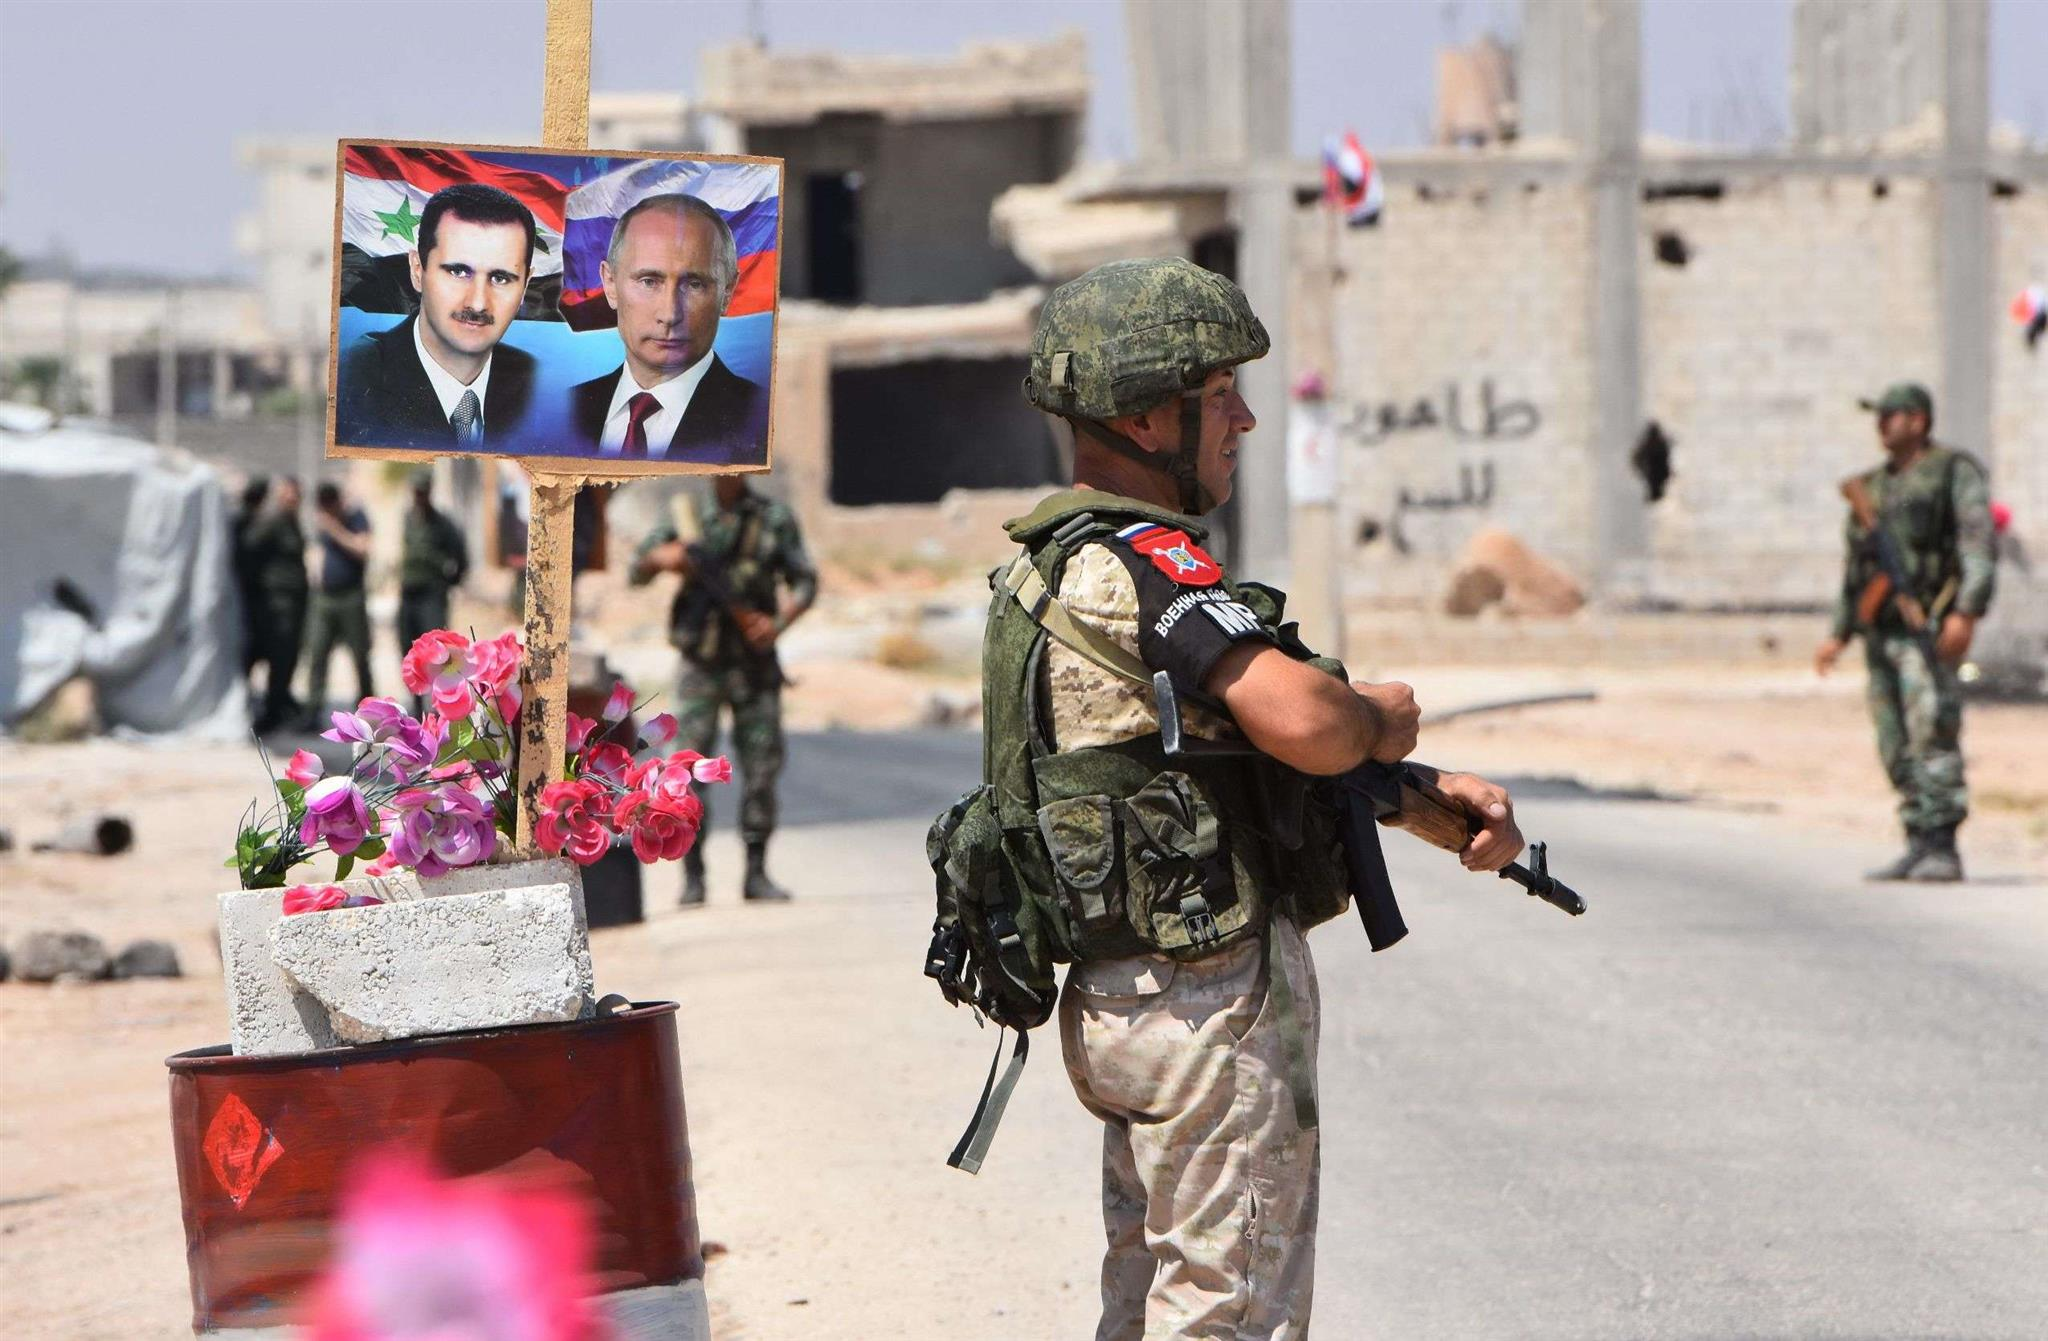 Members of Russian and Syrian forces stand guard near posters of Syrian President Bashar Assad (L) and his Russian counterpart Vladimir Putin at the Abu Duhur crossing on the eastern edge of Idlib, last August.(AFP)